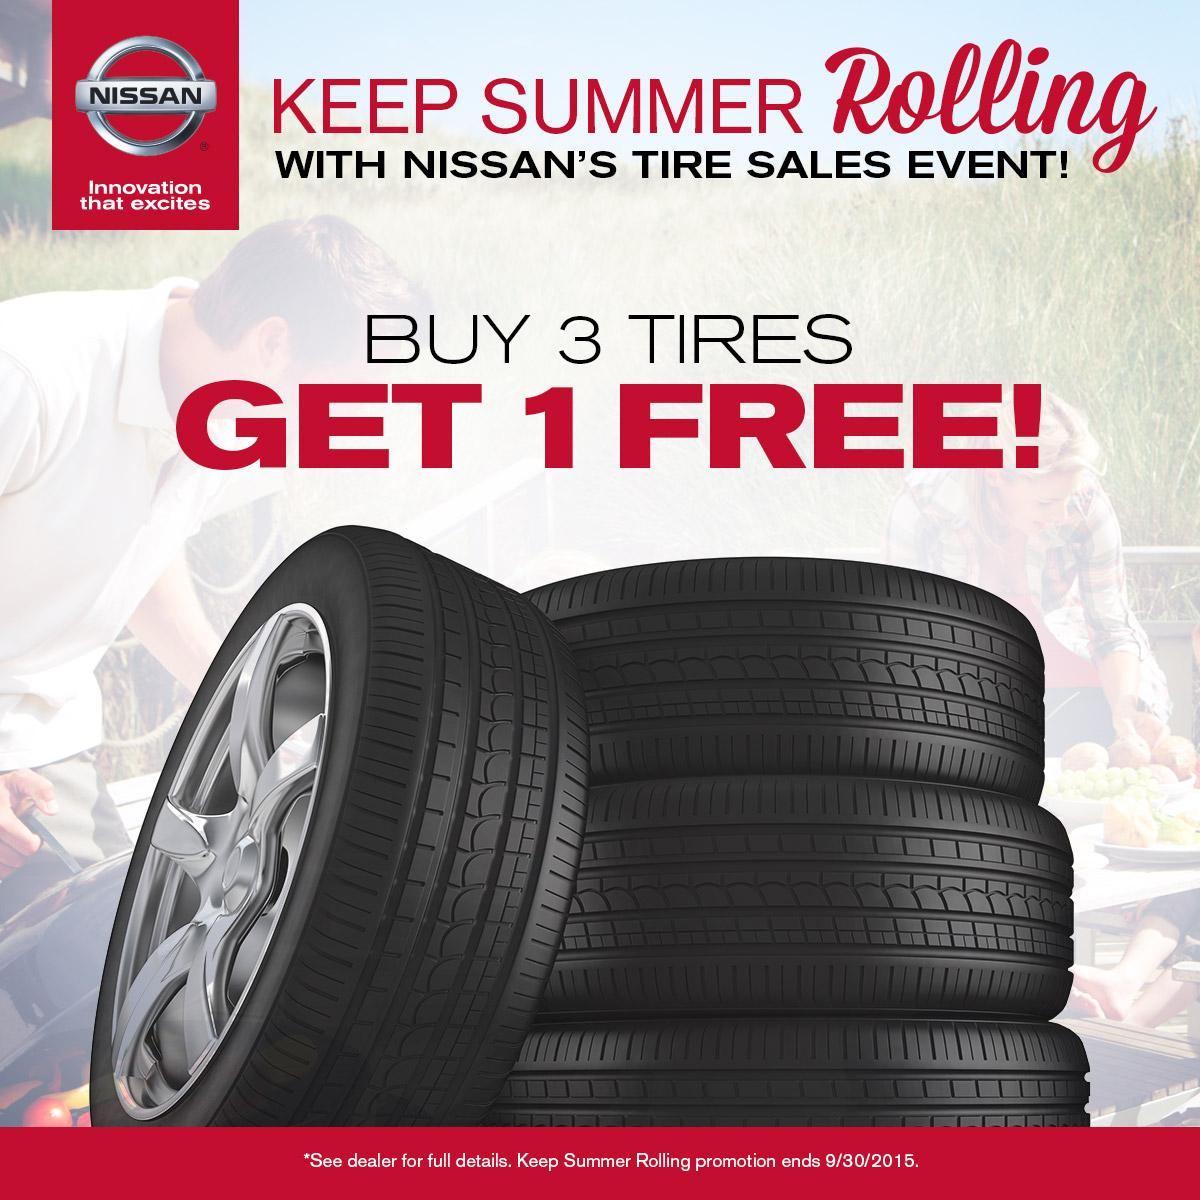 Carriage Nissan On Twitter It S Last Day To Buy 3 Tires And Get 1